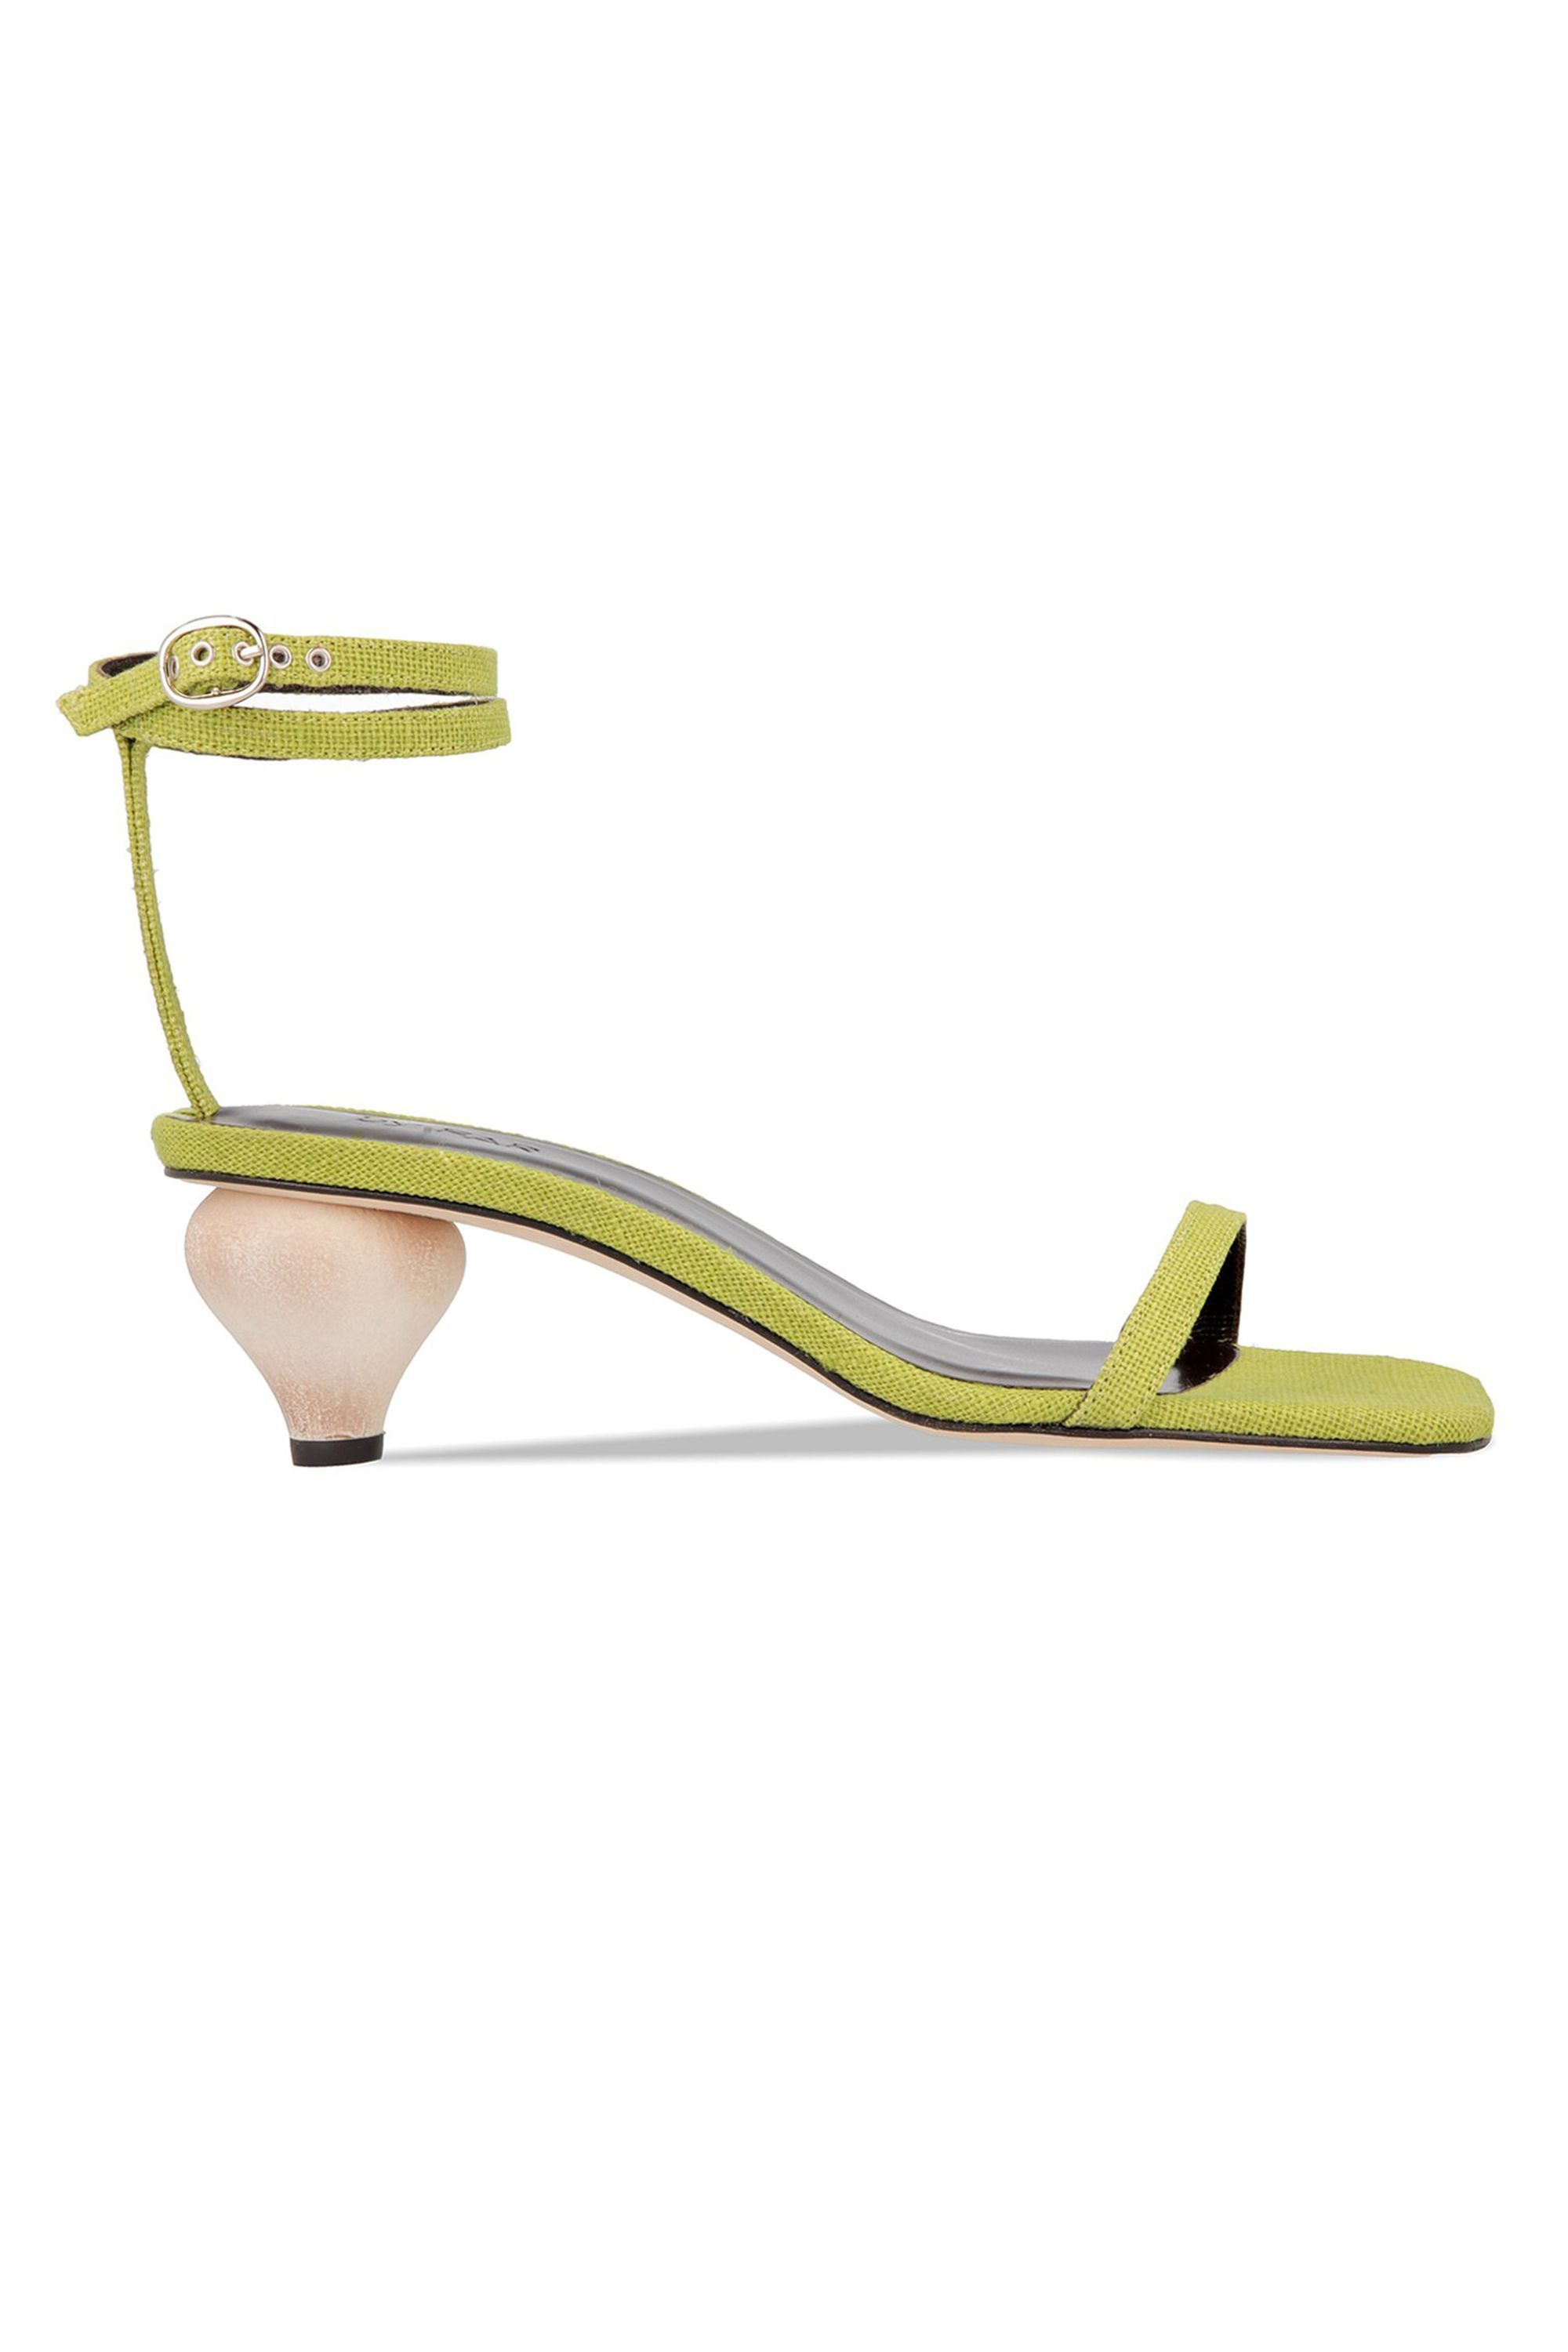 db3cfcdd9 Cute Summer Sandals 2019 - 24 Trendy Pairs of Sandals and and Heels for  Summer